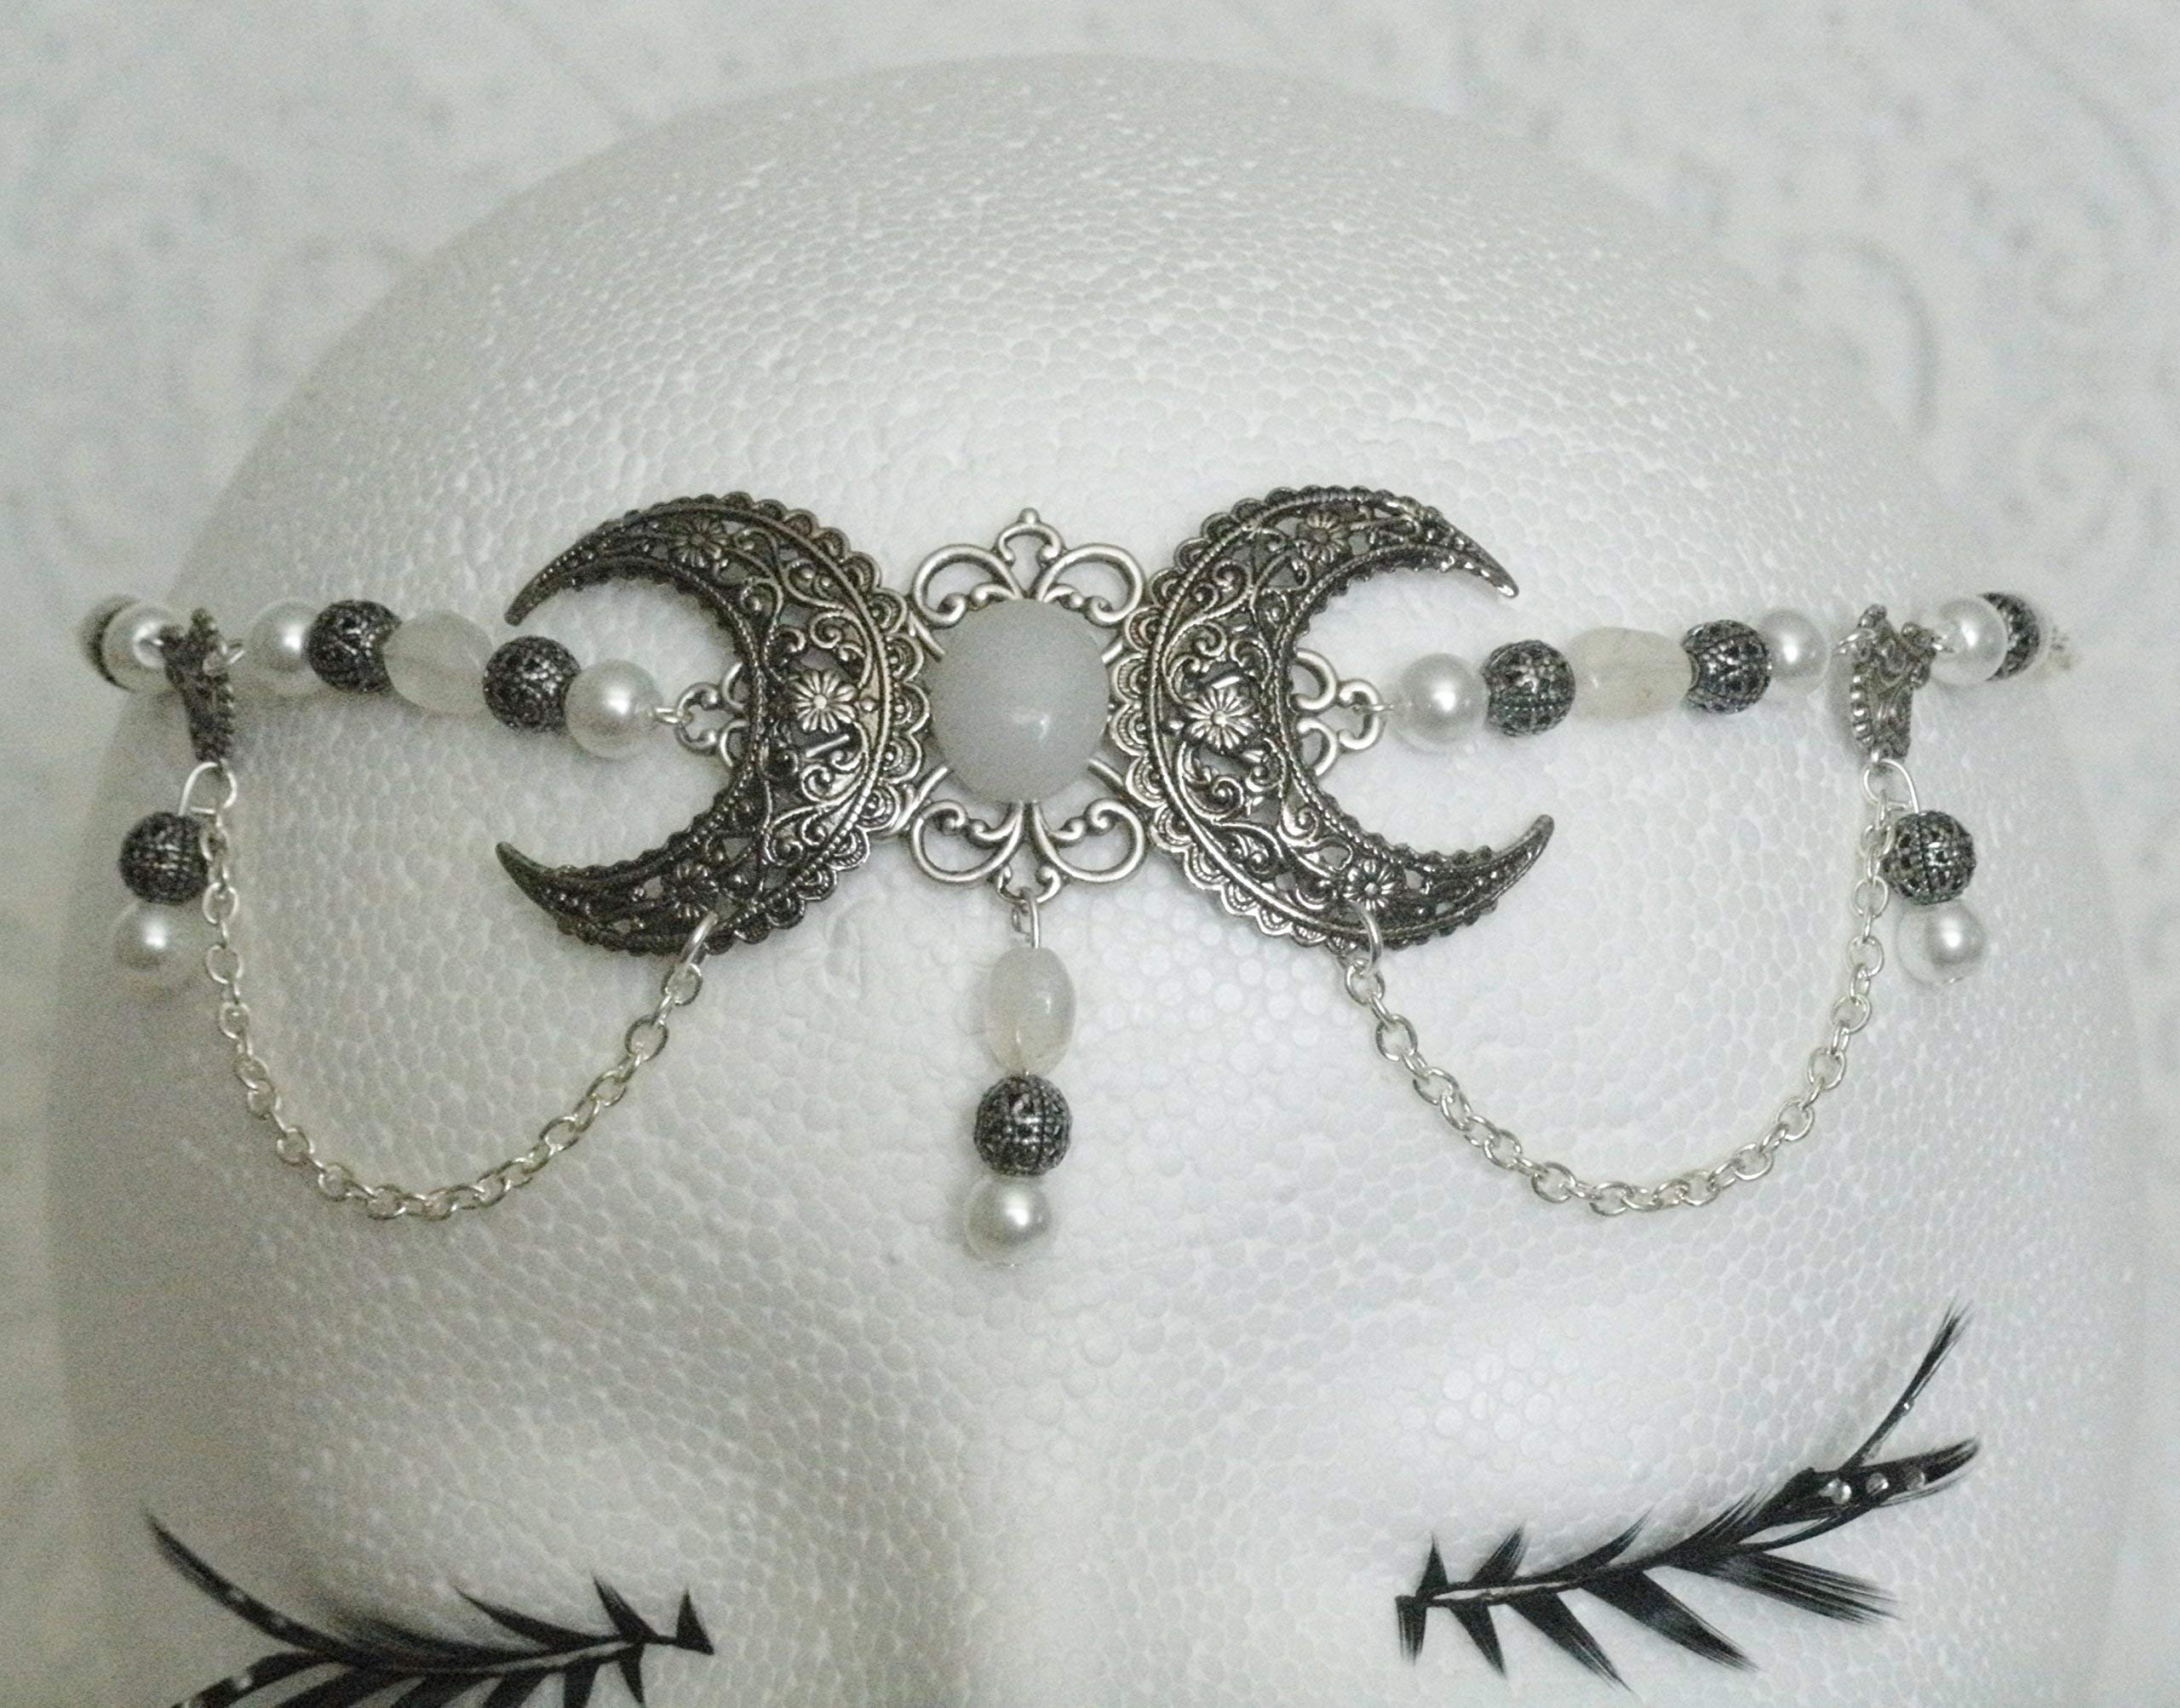 Moonstone Triple Moon Circlet handmade jewelry wiccan pagan wicca witch witchcraft goddess metaphysical handfasting